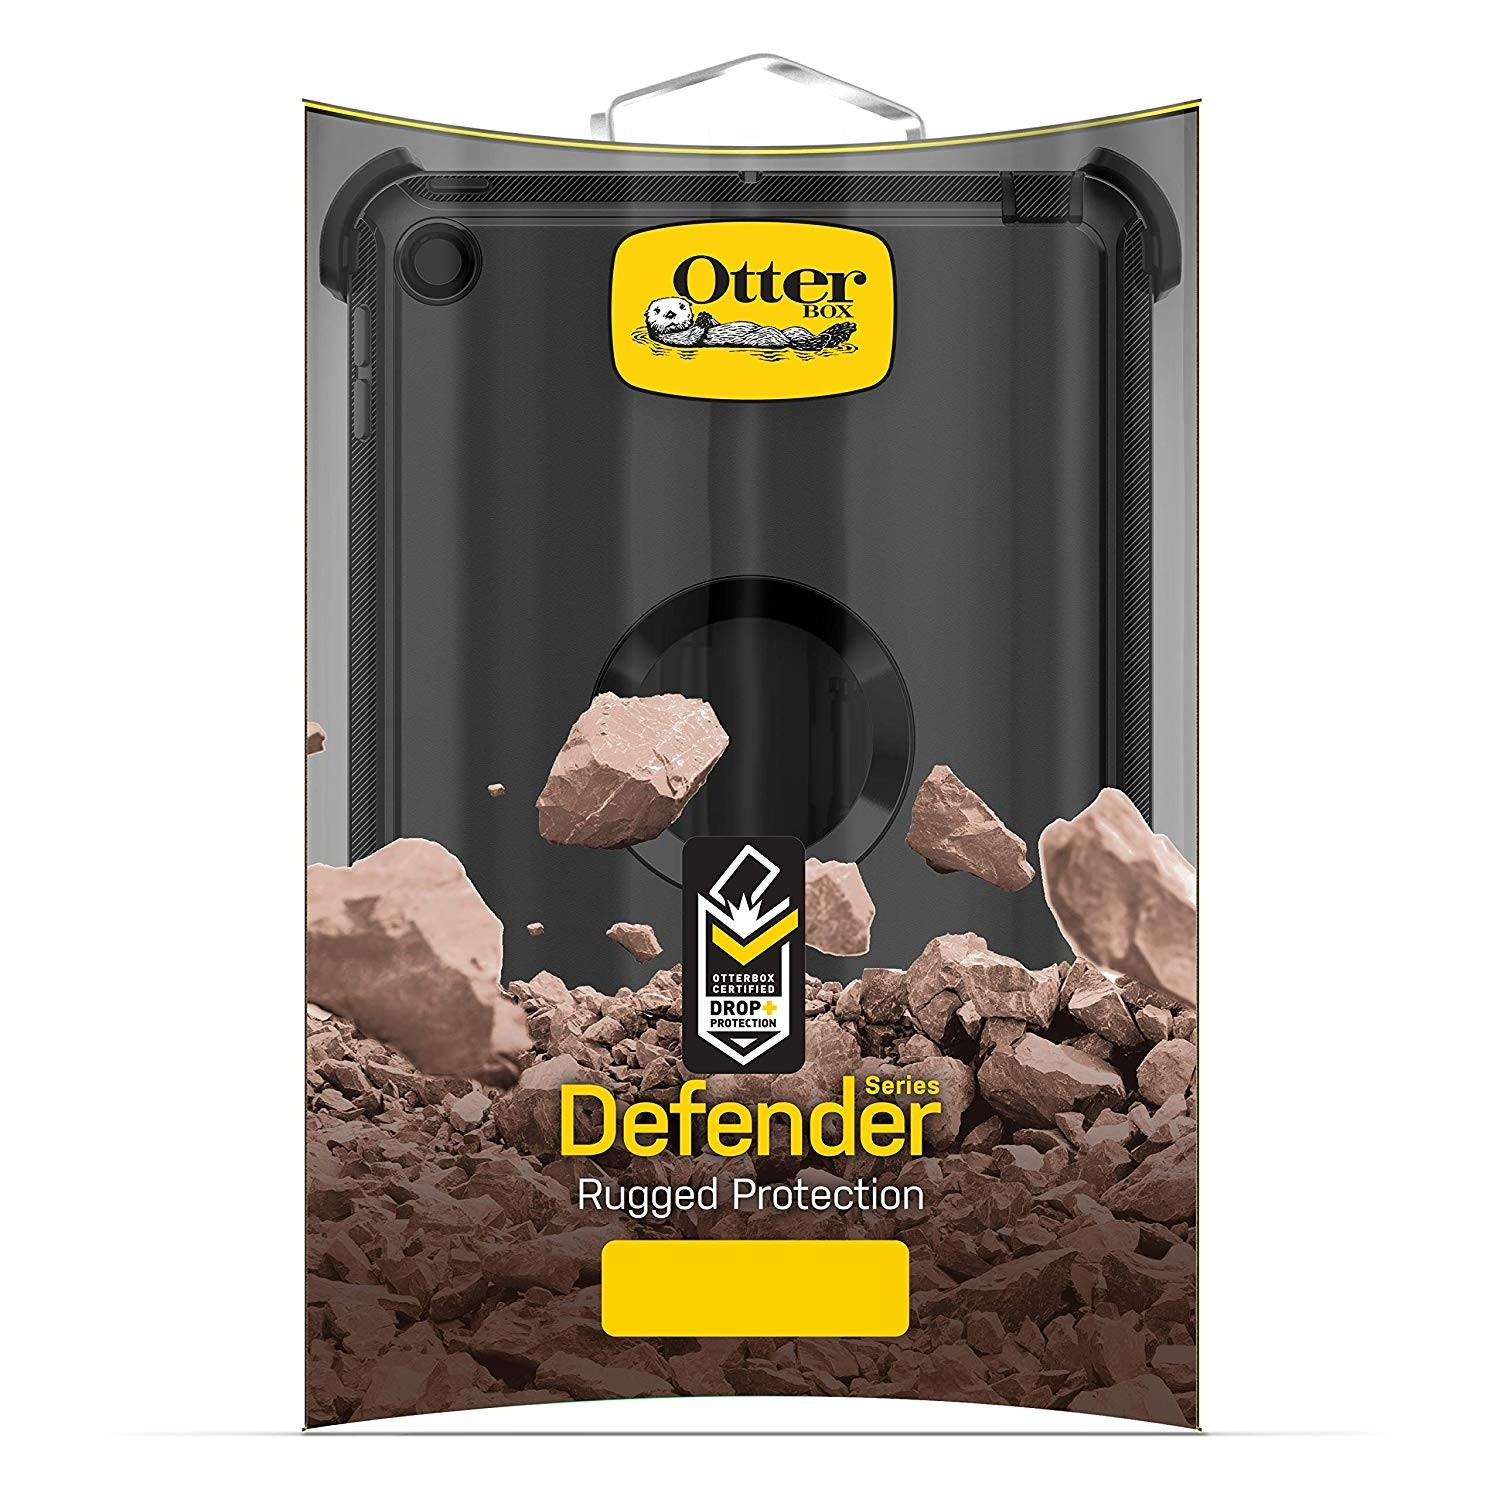 OtterBox Defender Series Case for iPad mini Early 2019 - Black, 77-62216